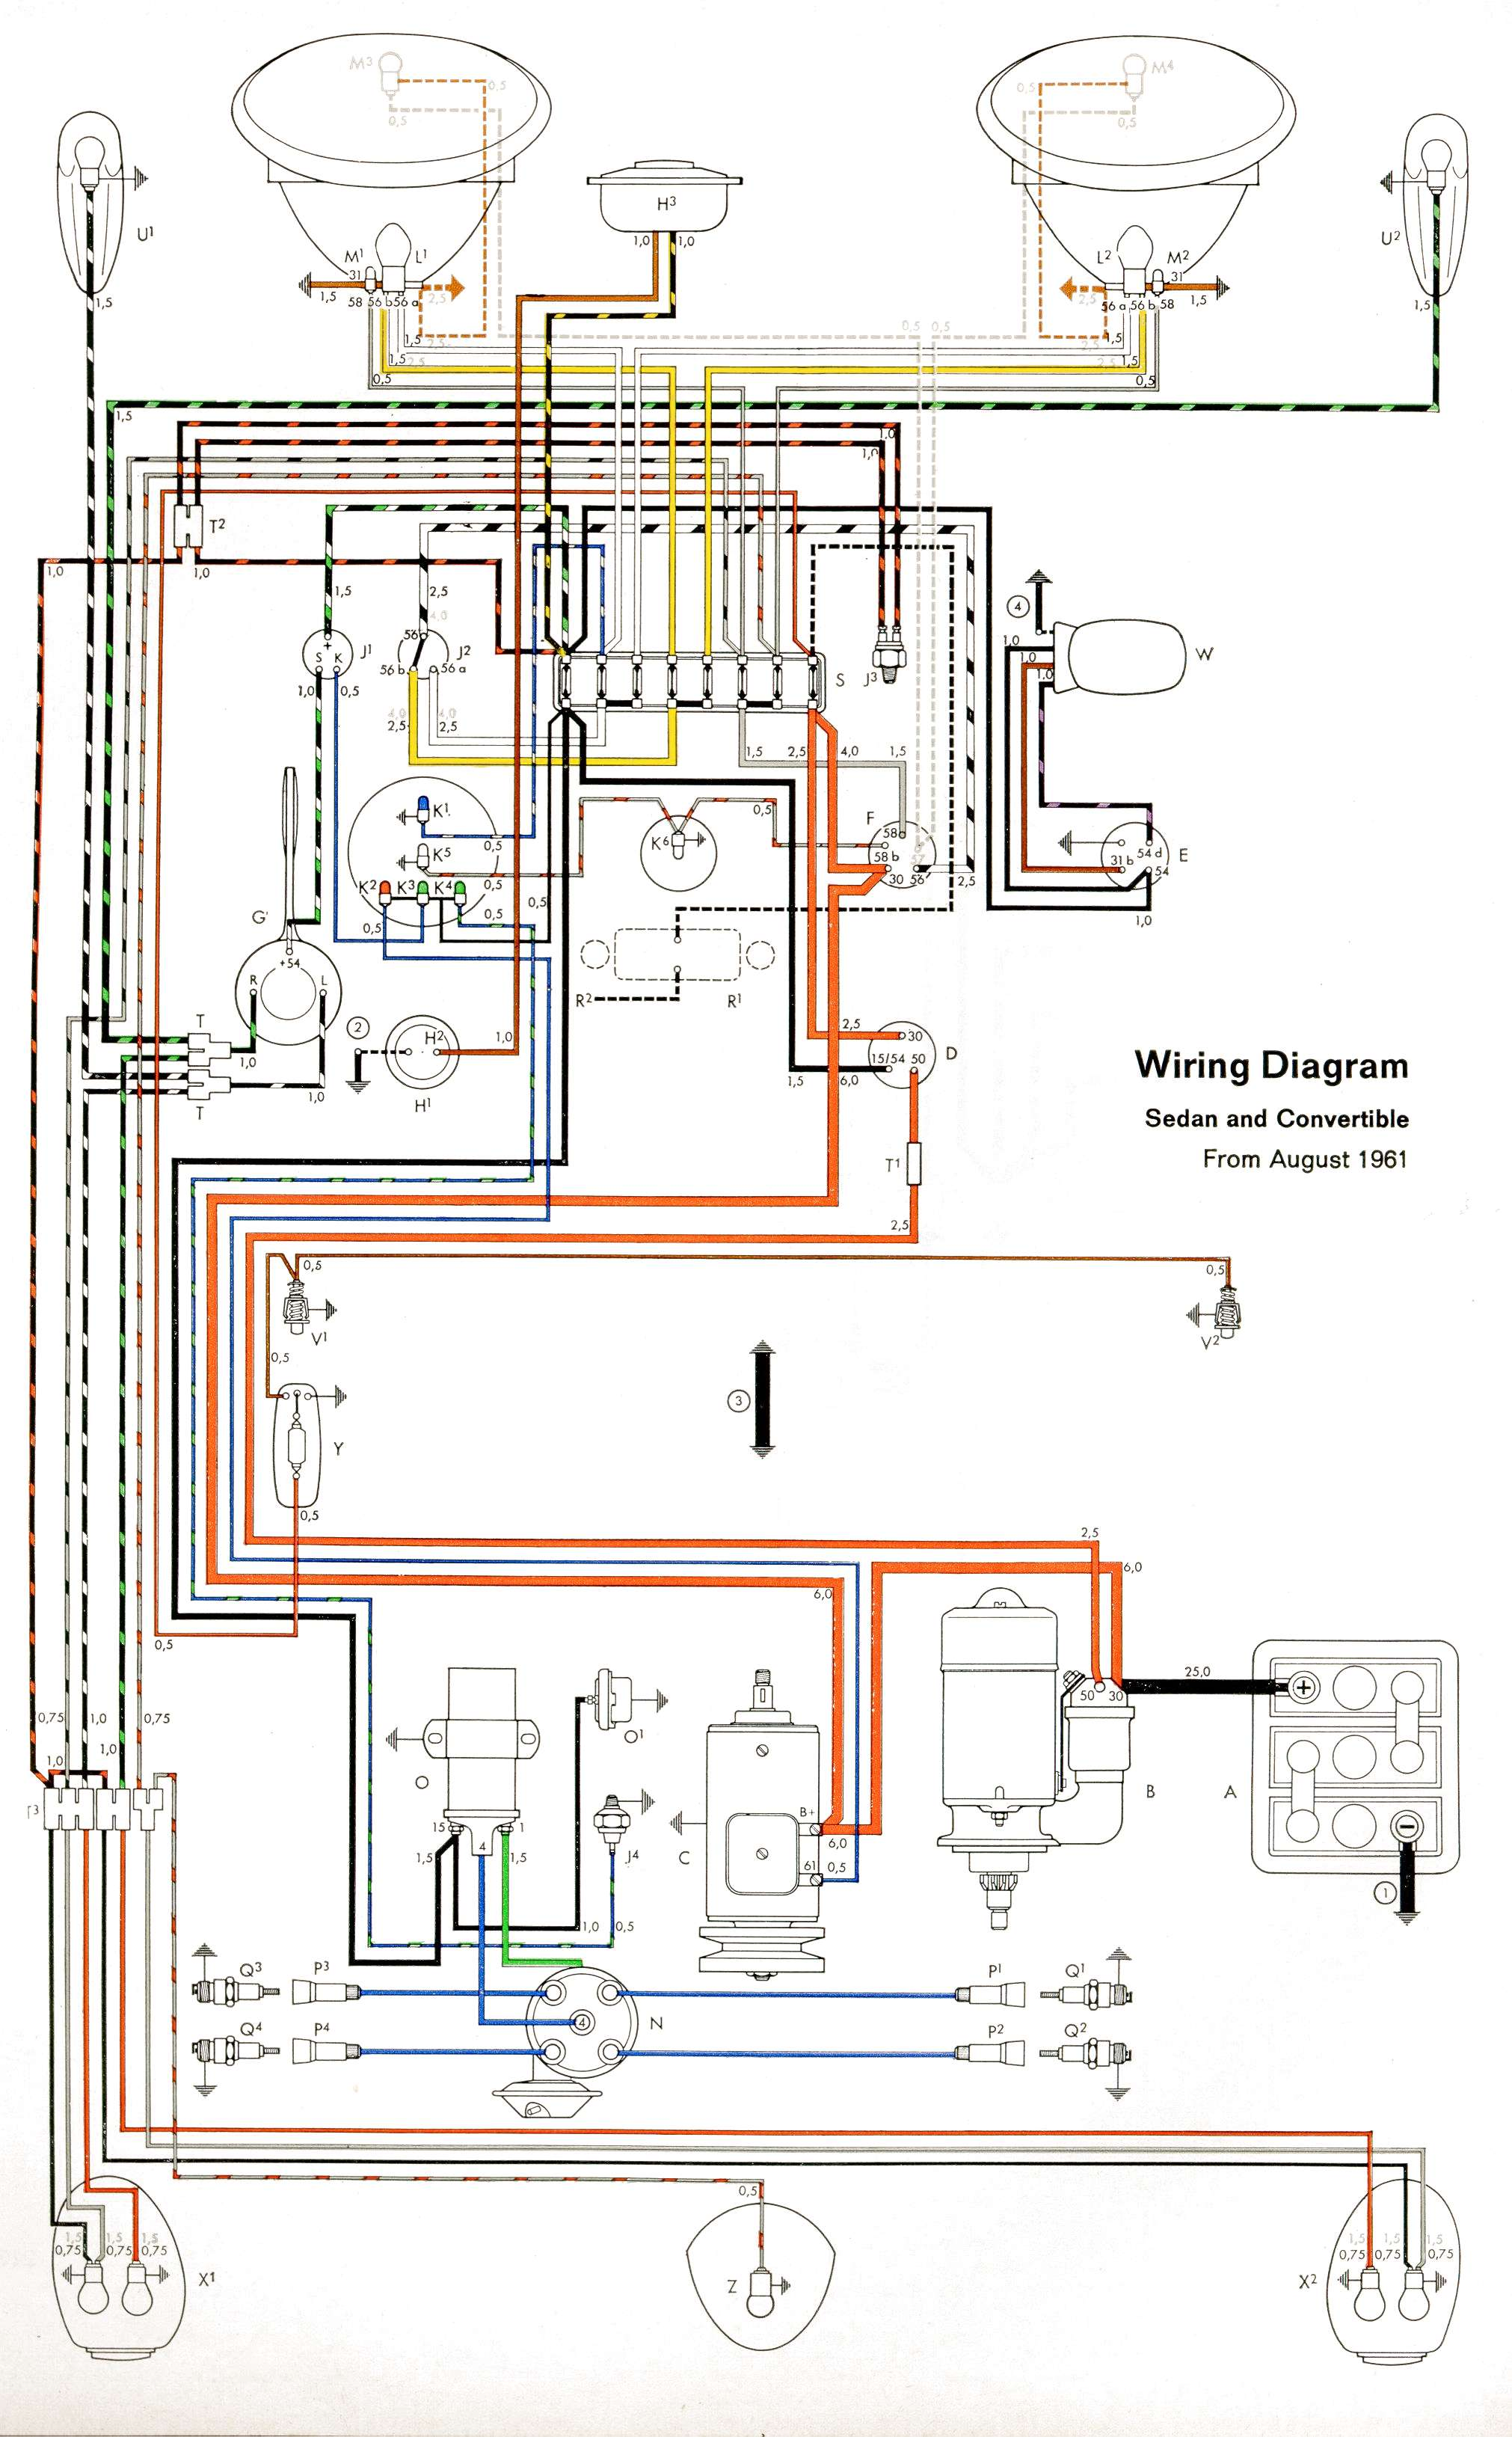 1936 Volkswagen Beetle Engine Diagram Wiring Will Be A Thing Vw Air Cooled 69 Coil Free Image For User 1974